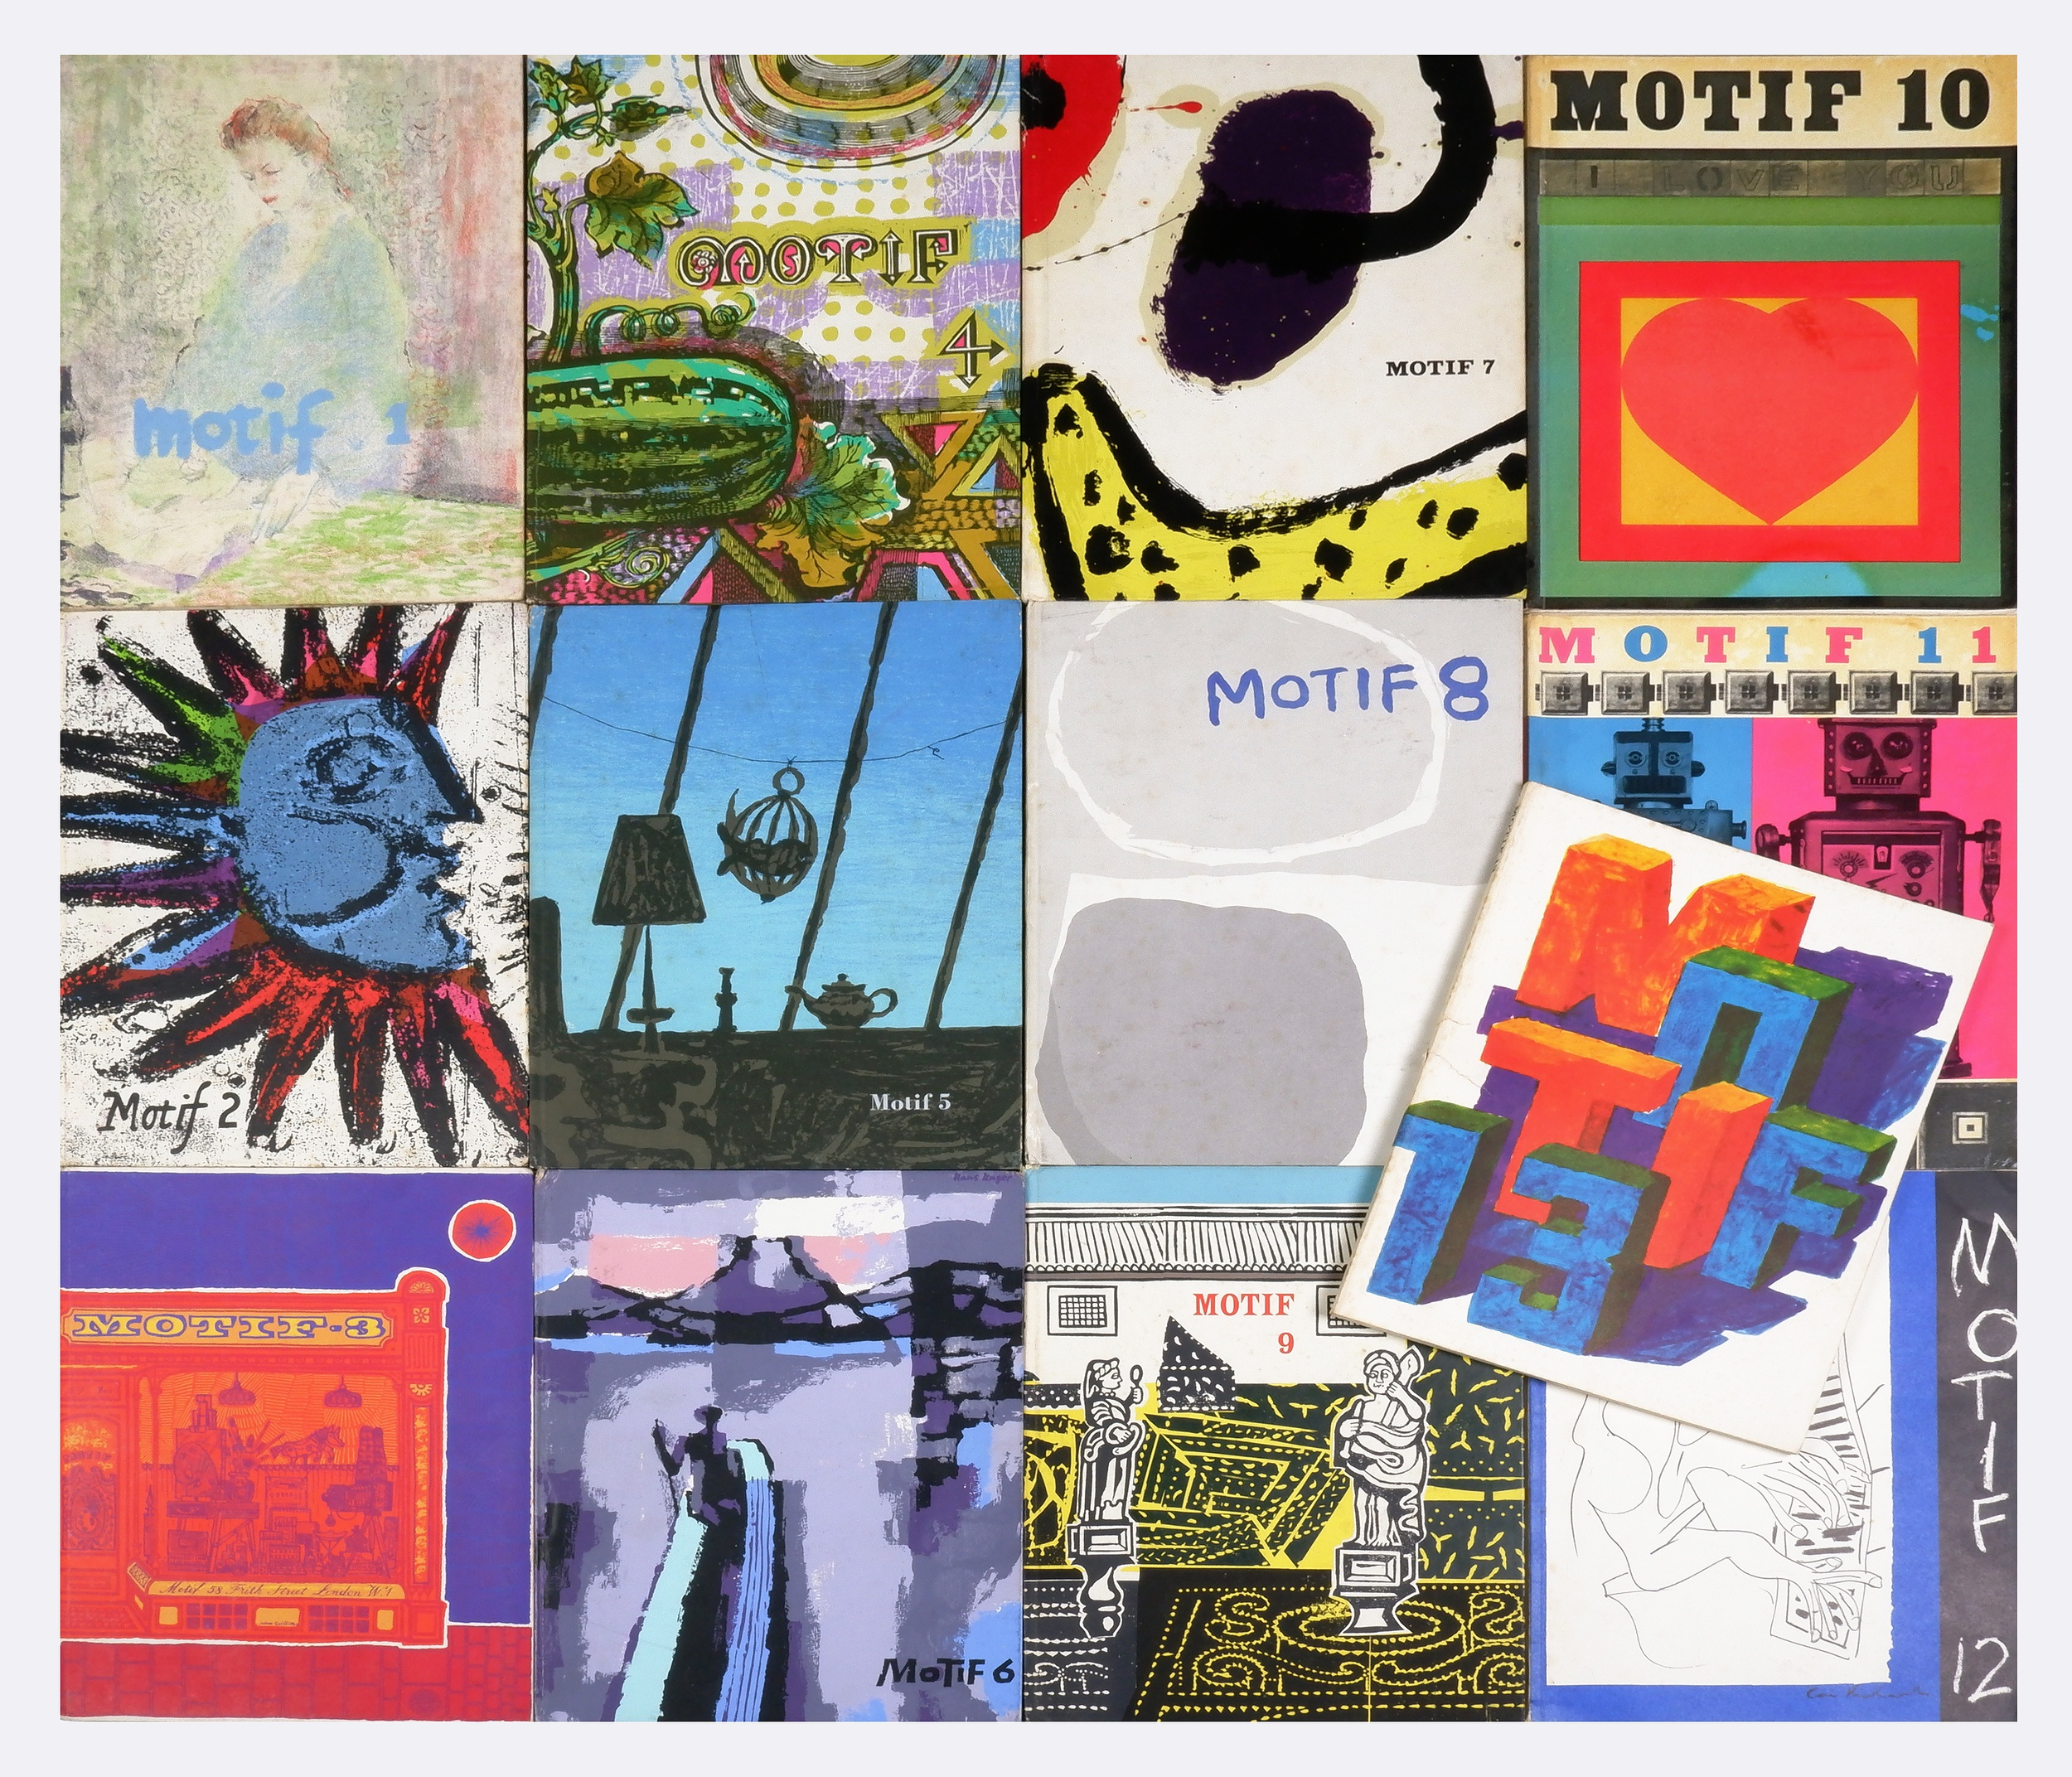 'Complete Set of Motif Magazines, 13 Issues, The Shenval Press, London. Published 1958 - 1967'